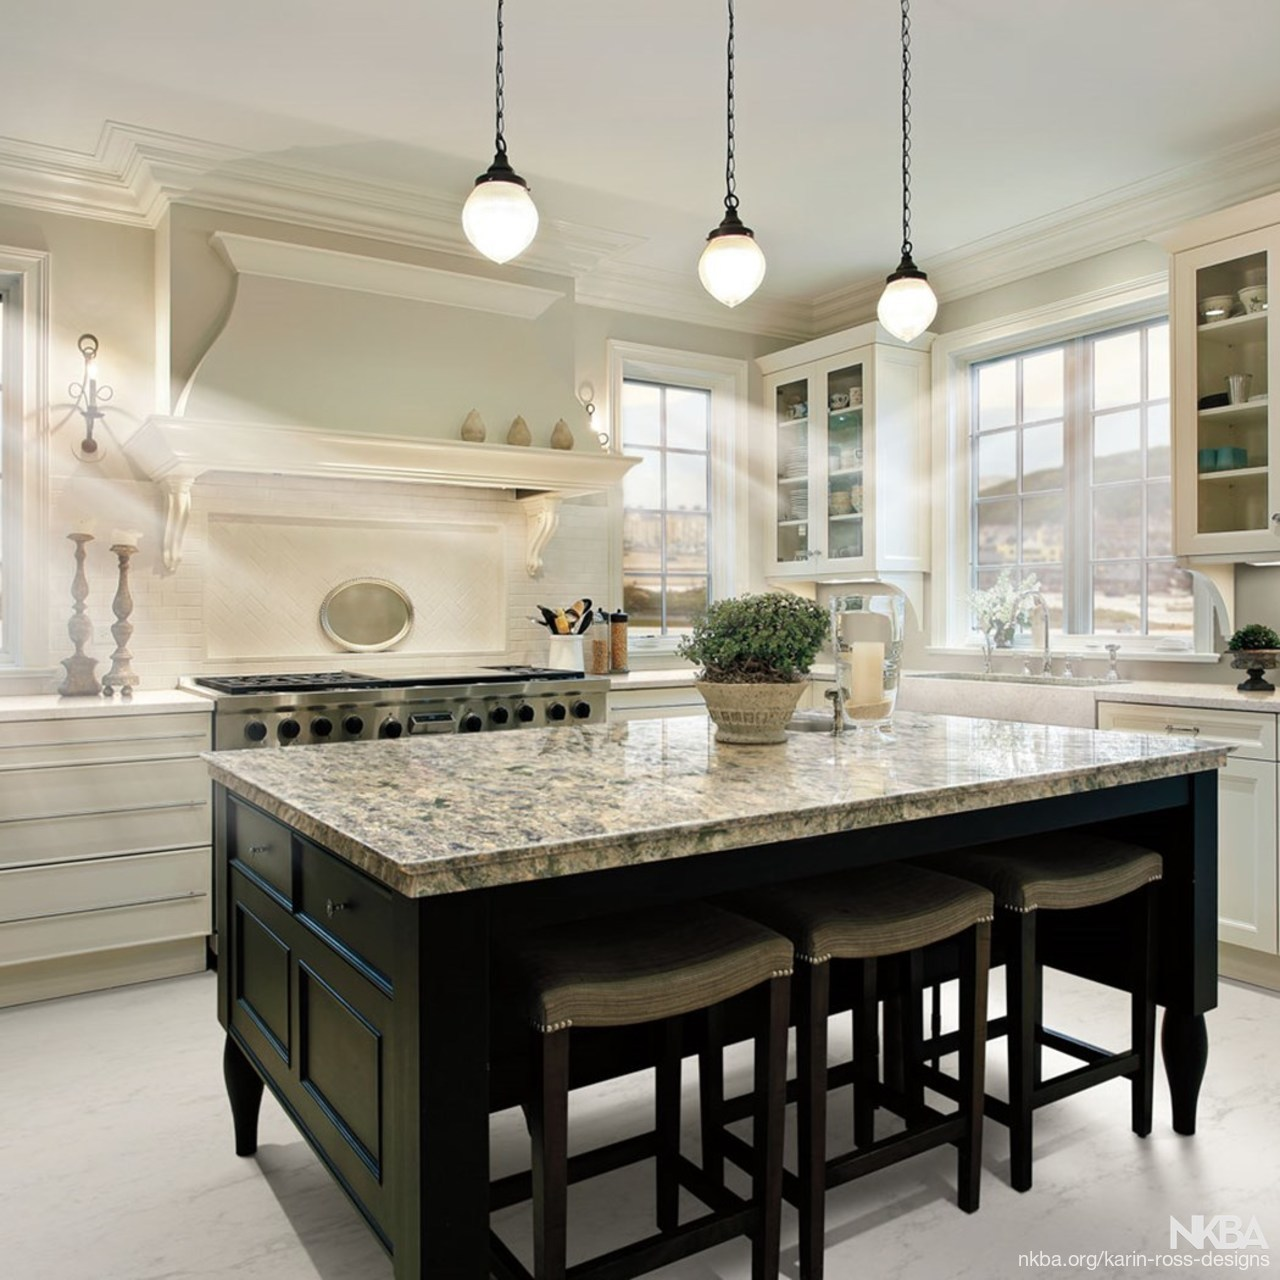 Karin Ross Designs! Where dream kitchens are created - NKBA